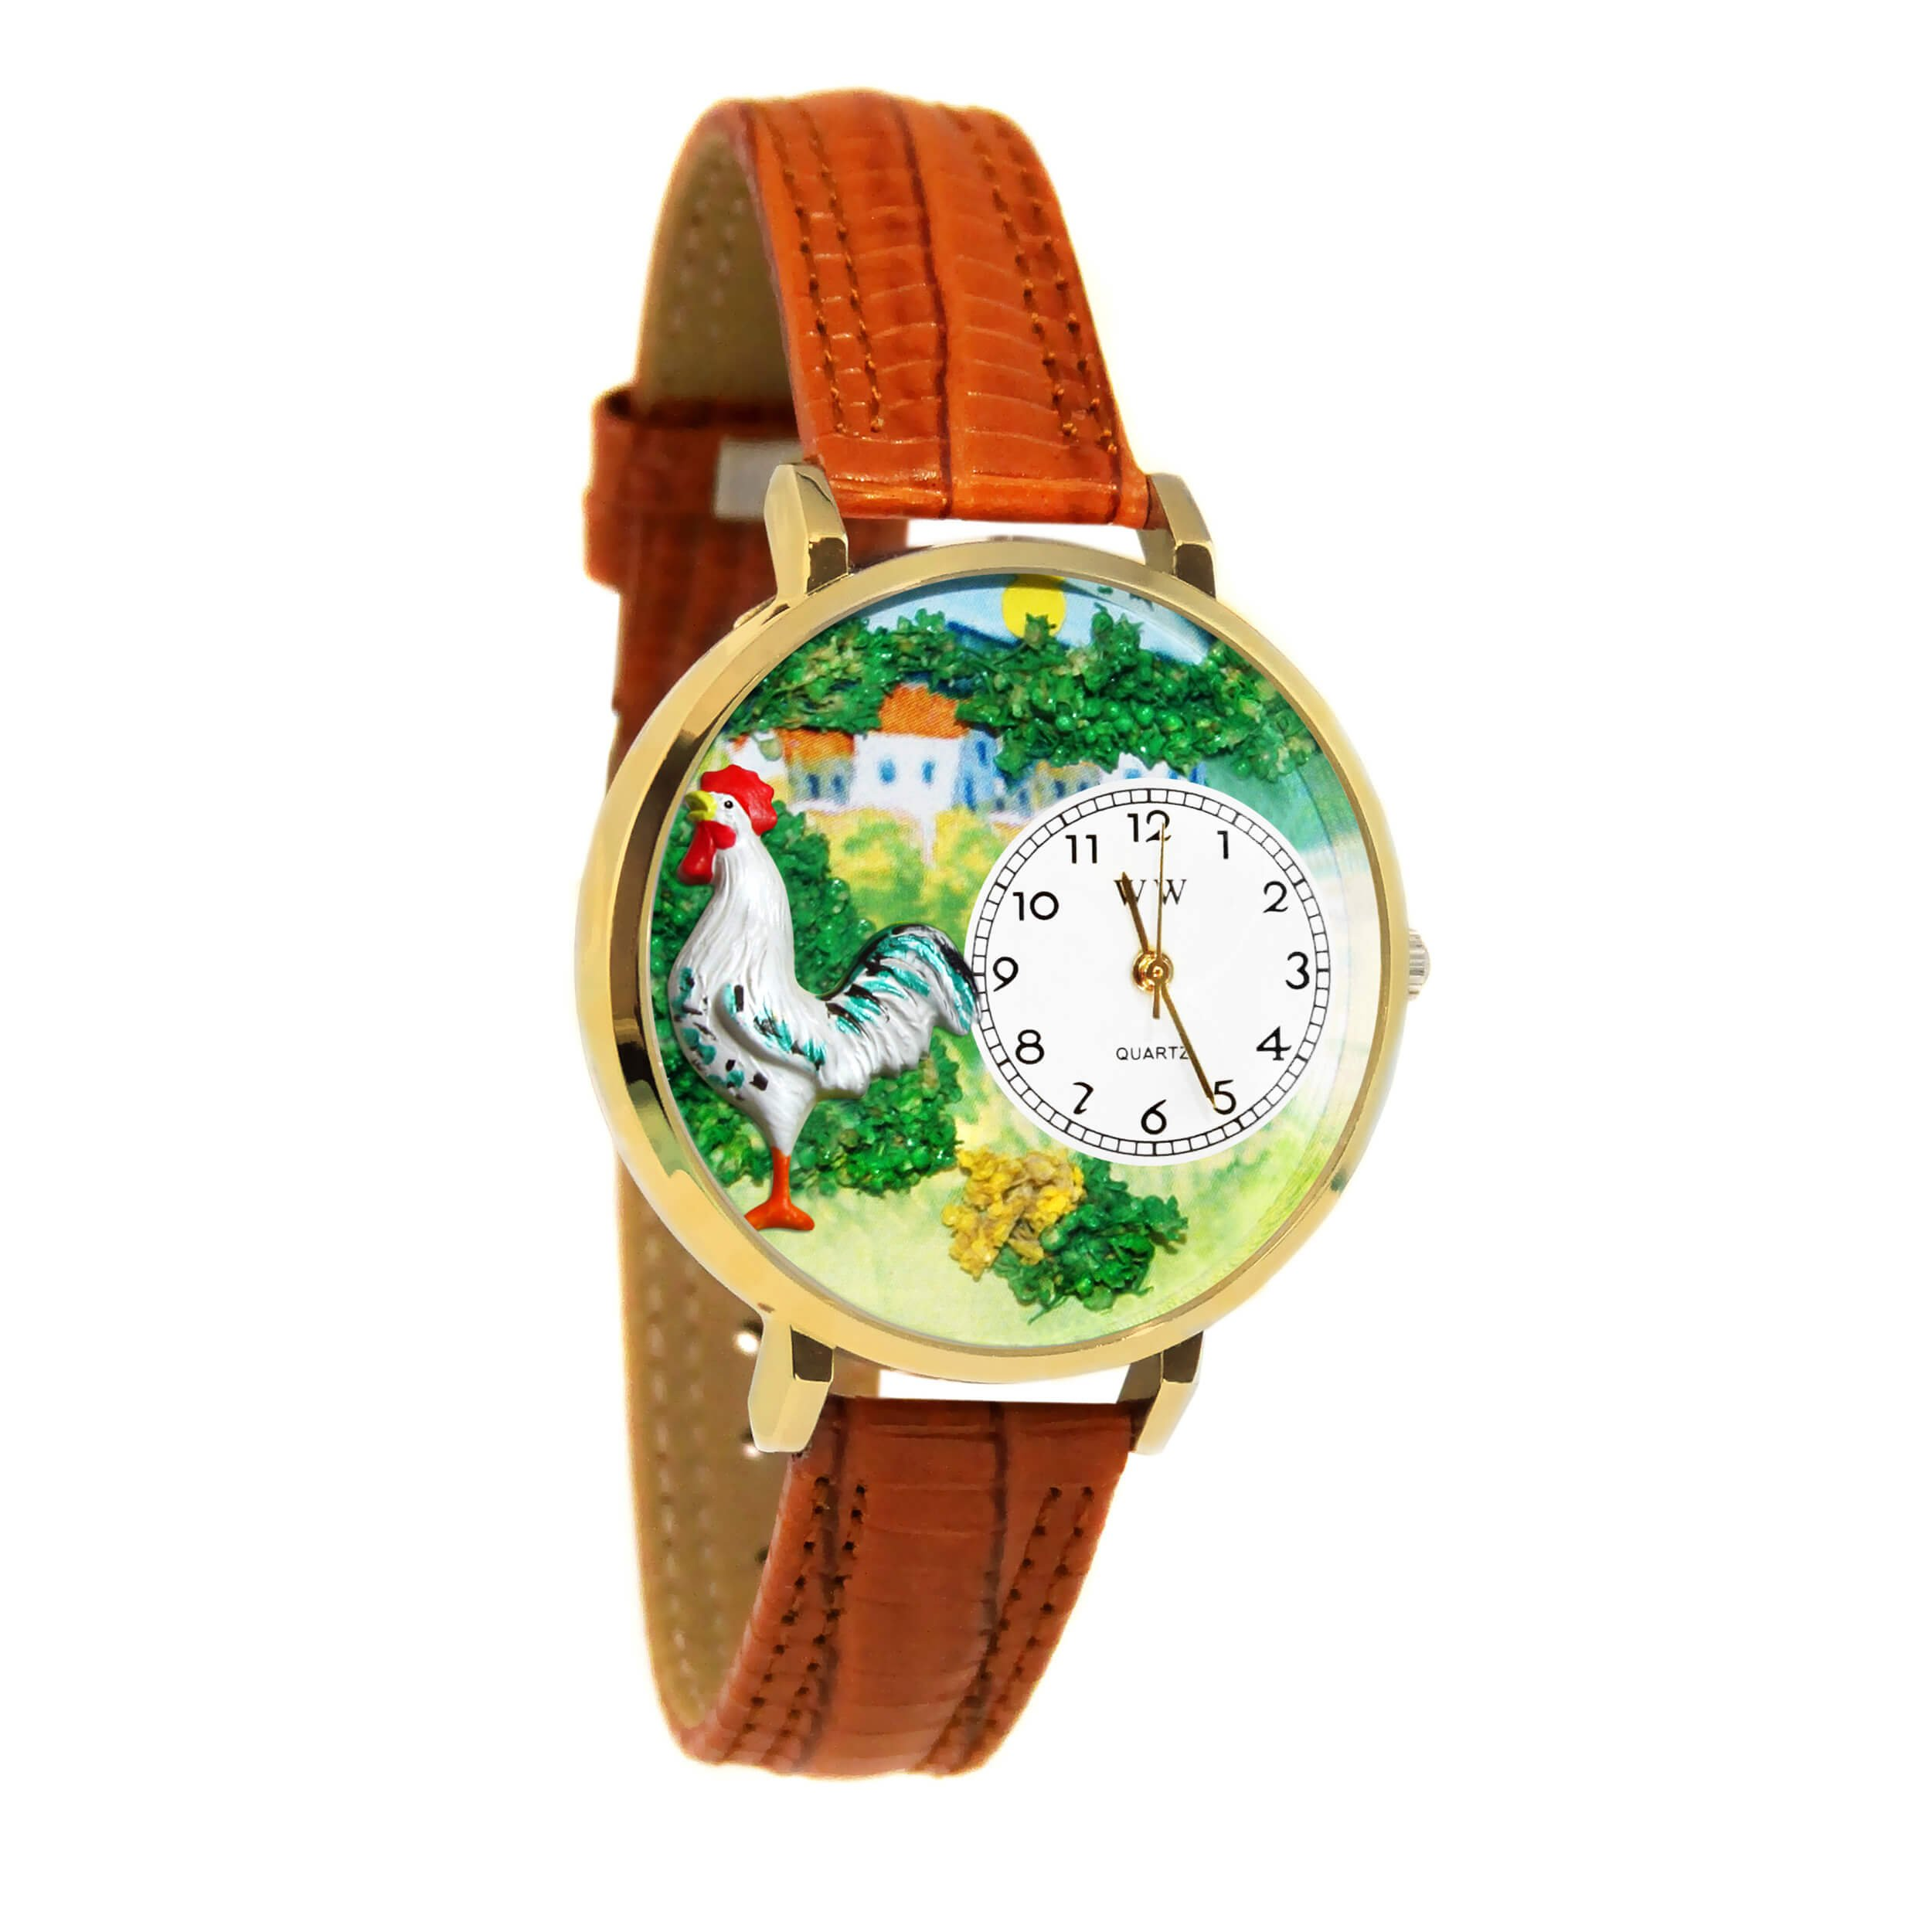 Whimsical Watches Unisex G-0110001 Rooster Tan Leather Watch